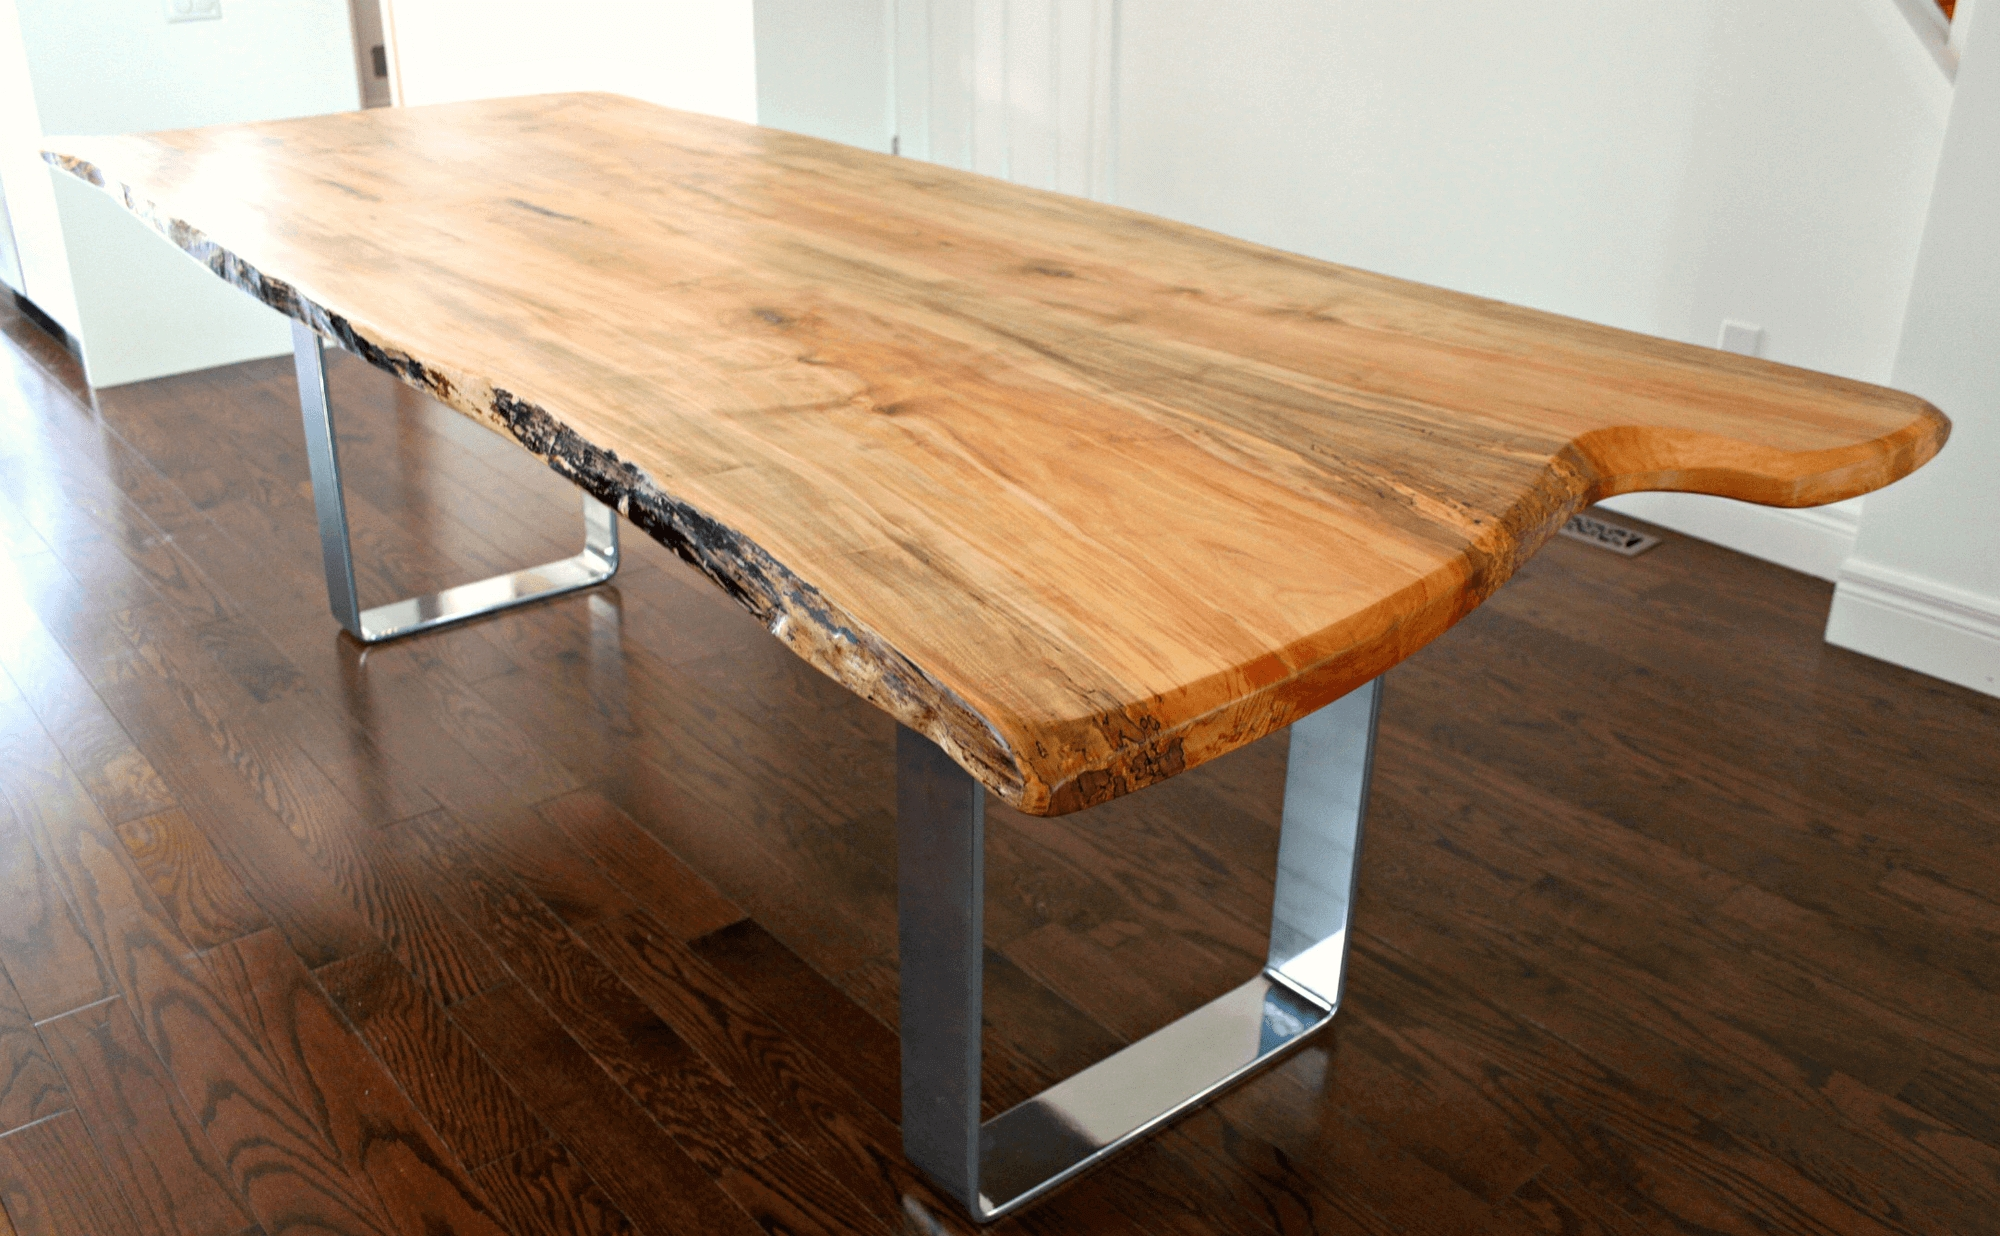 30 Inspirations of Live Edge Teak Coffee Tables